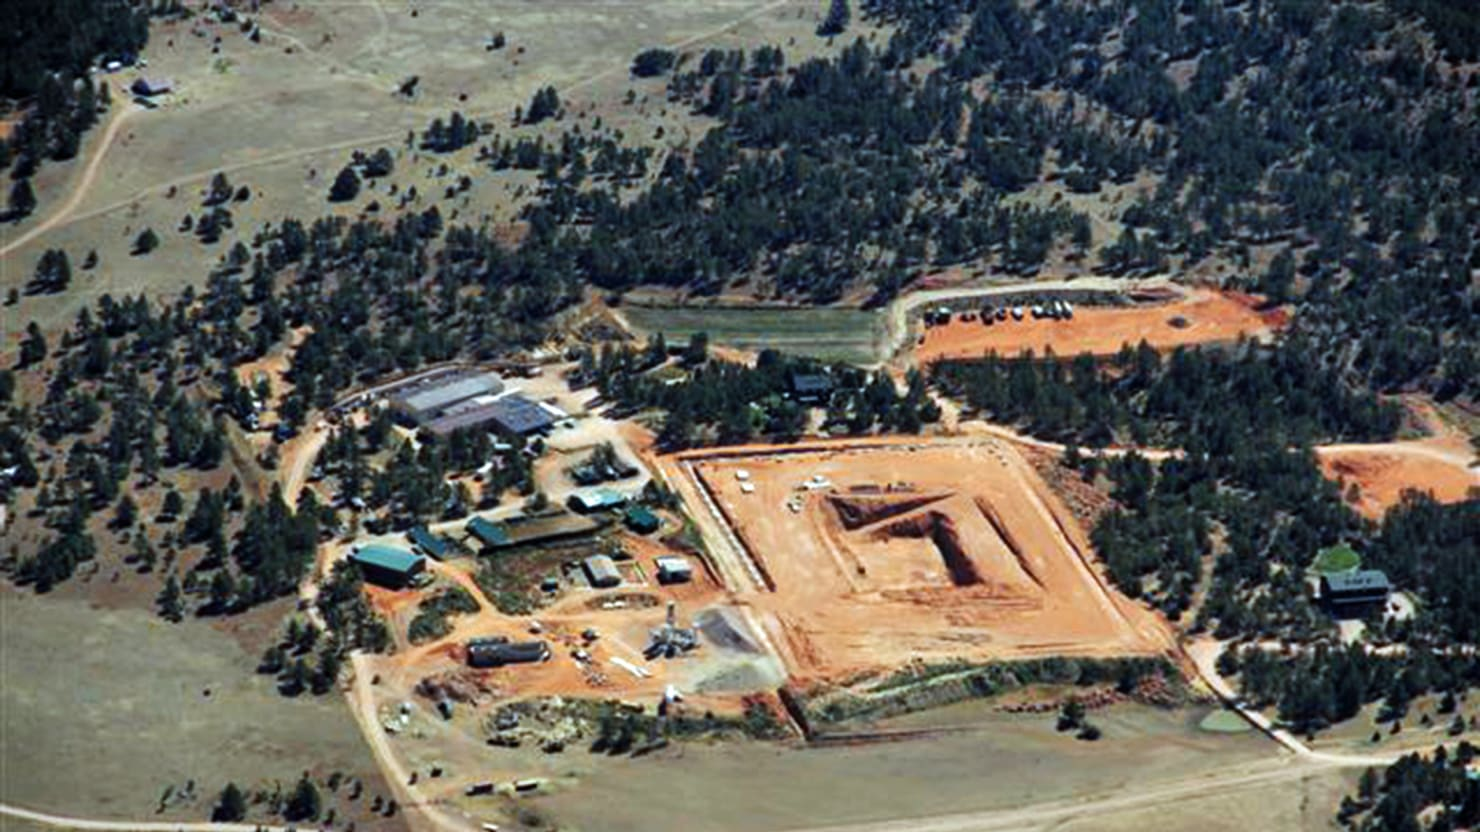 19 things you probably dont know about flds polygamists - HD1480×832